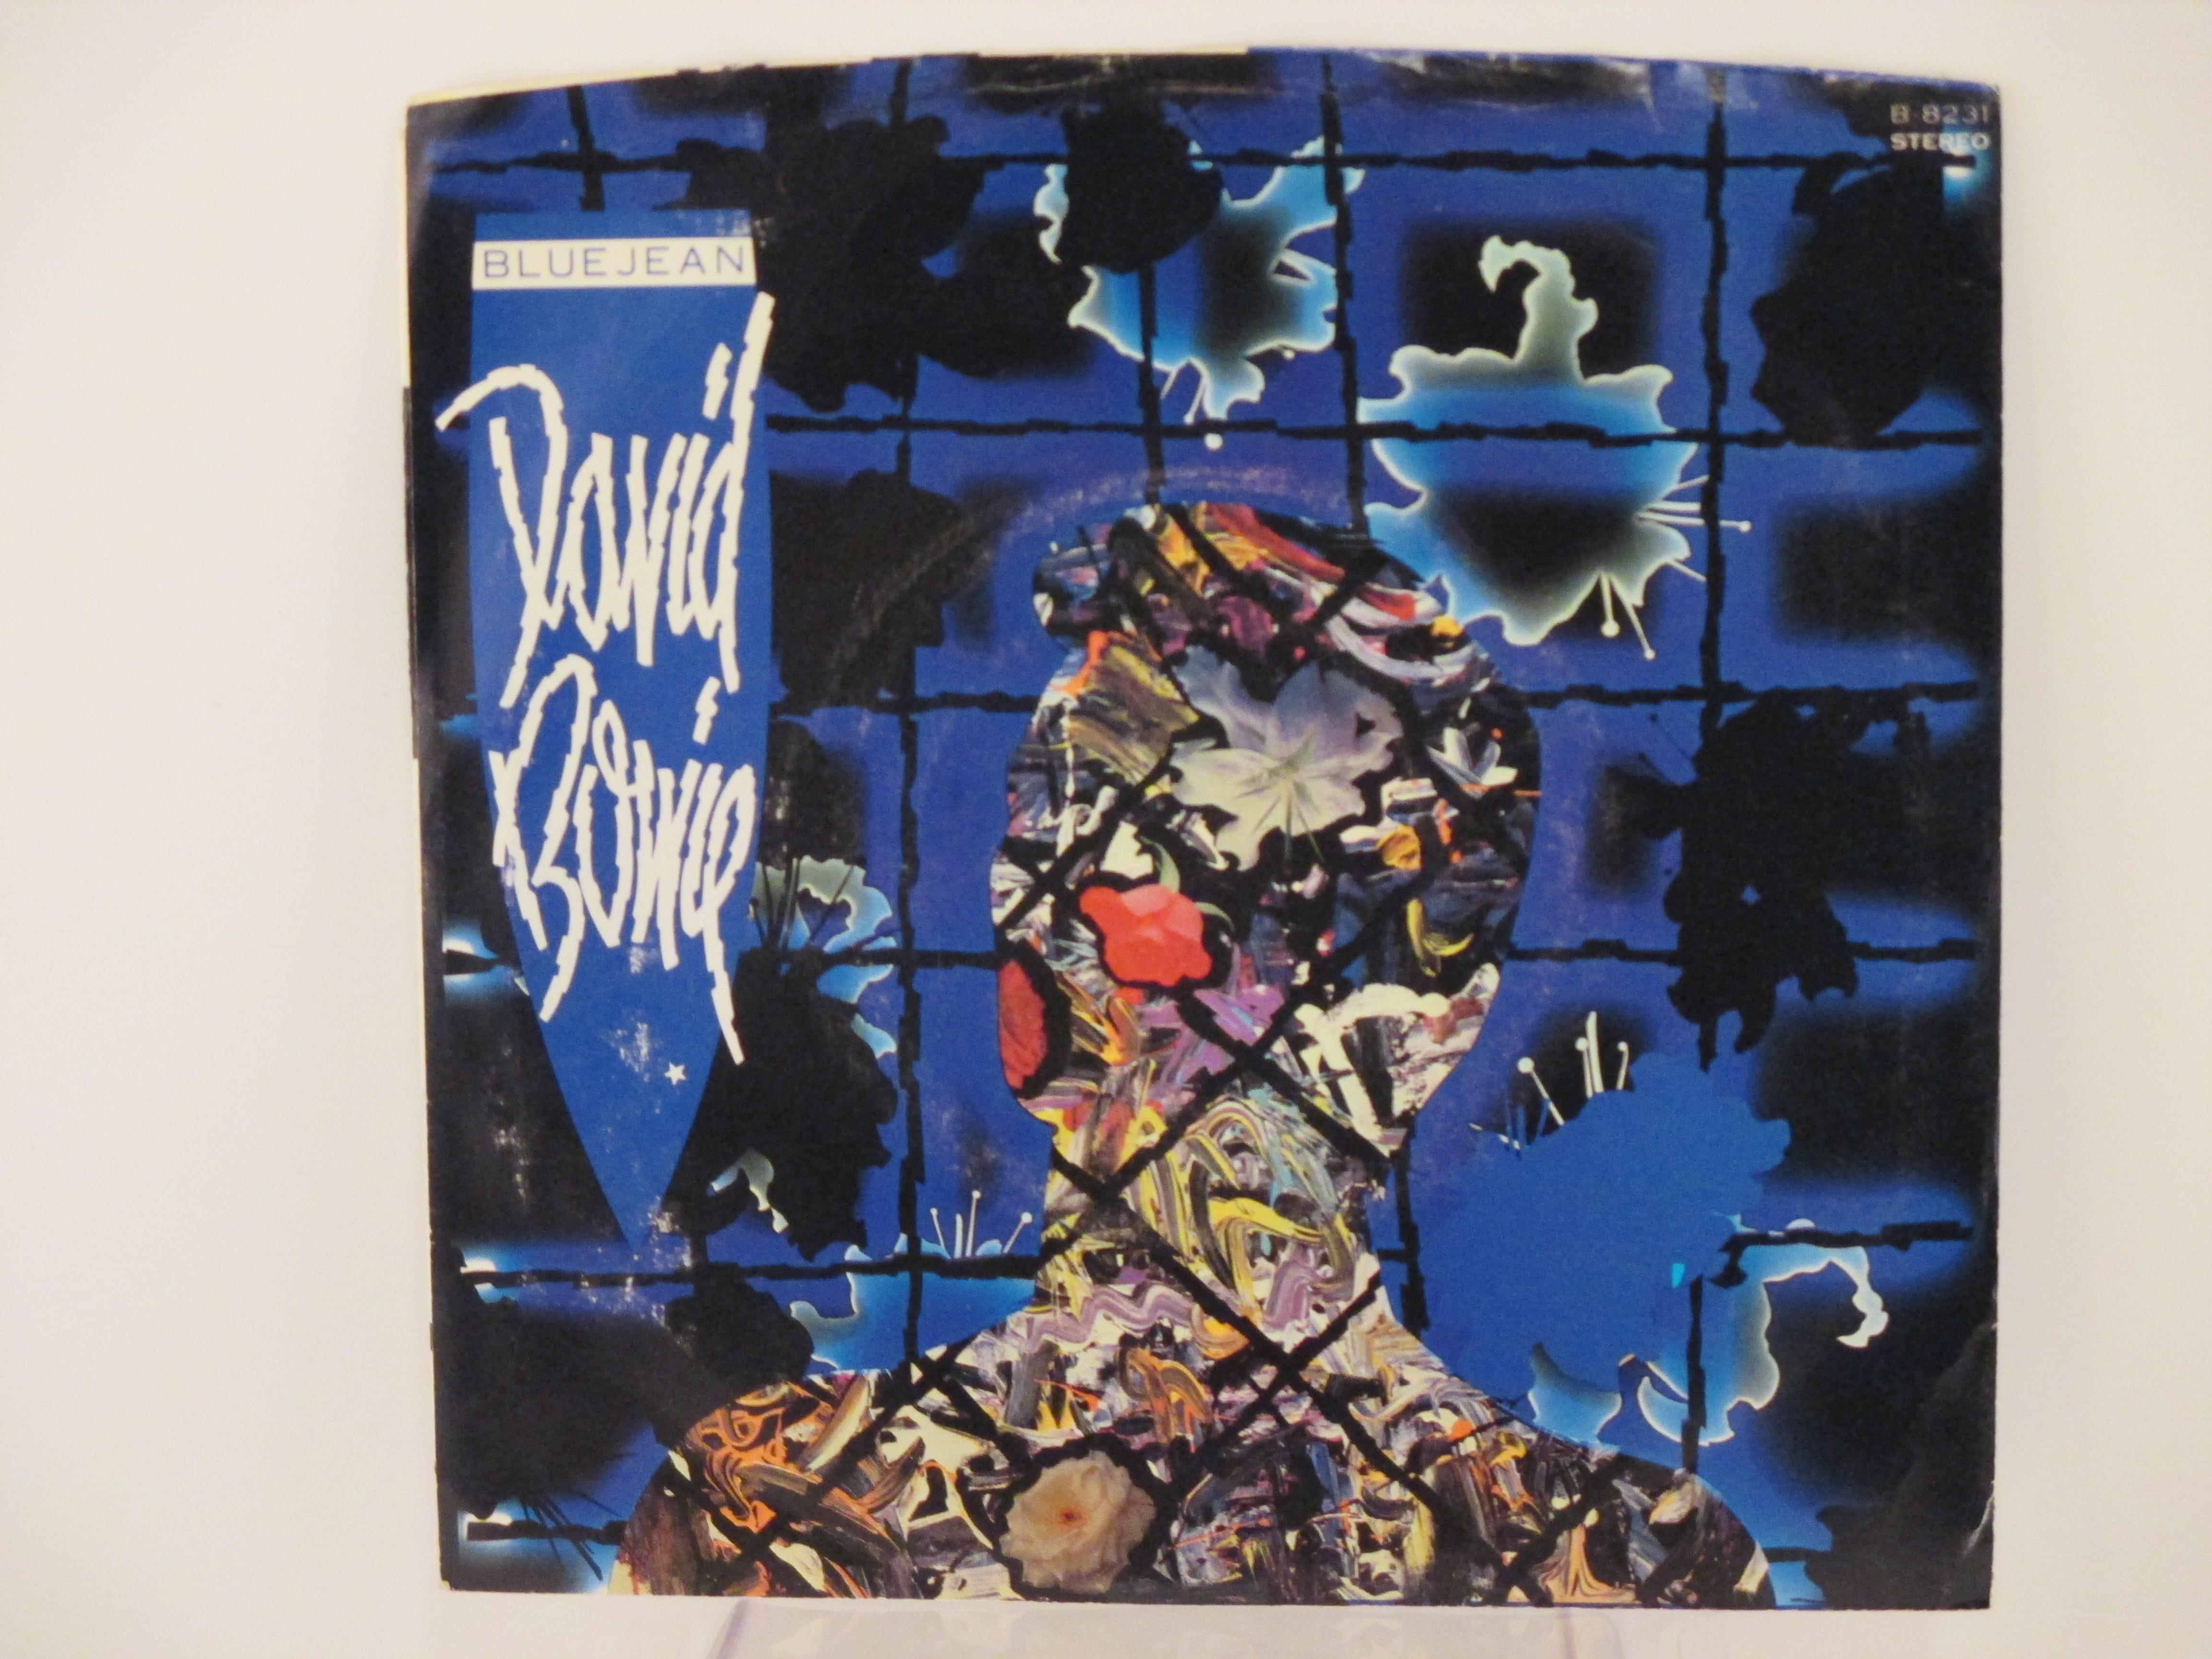 DAVID BOWIE : Blue Jean / Dancing with the big boys